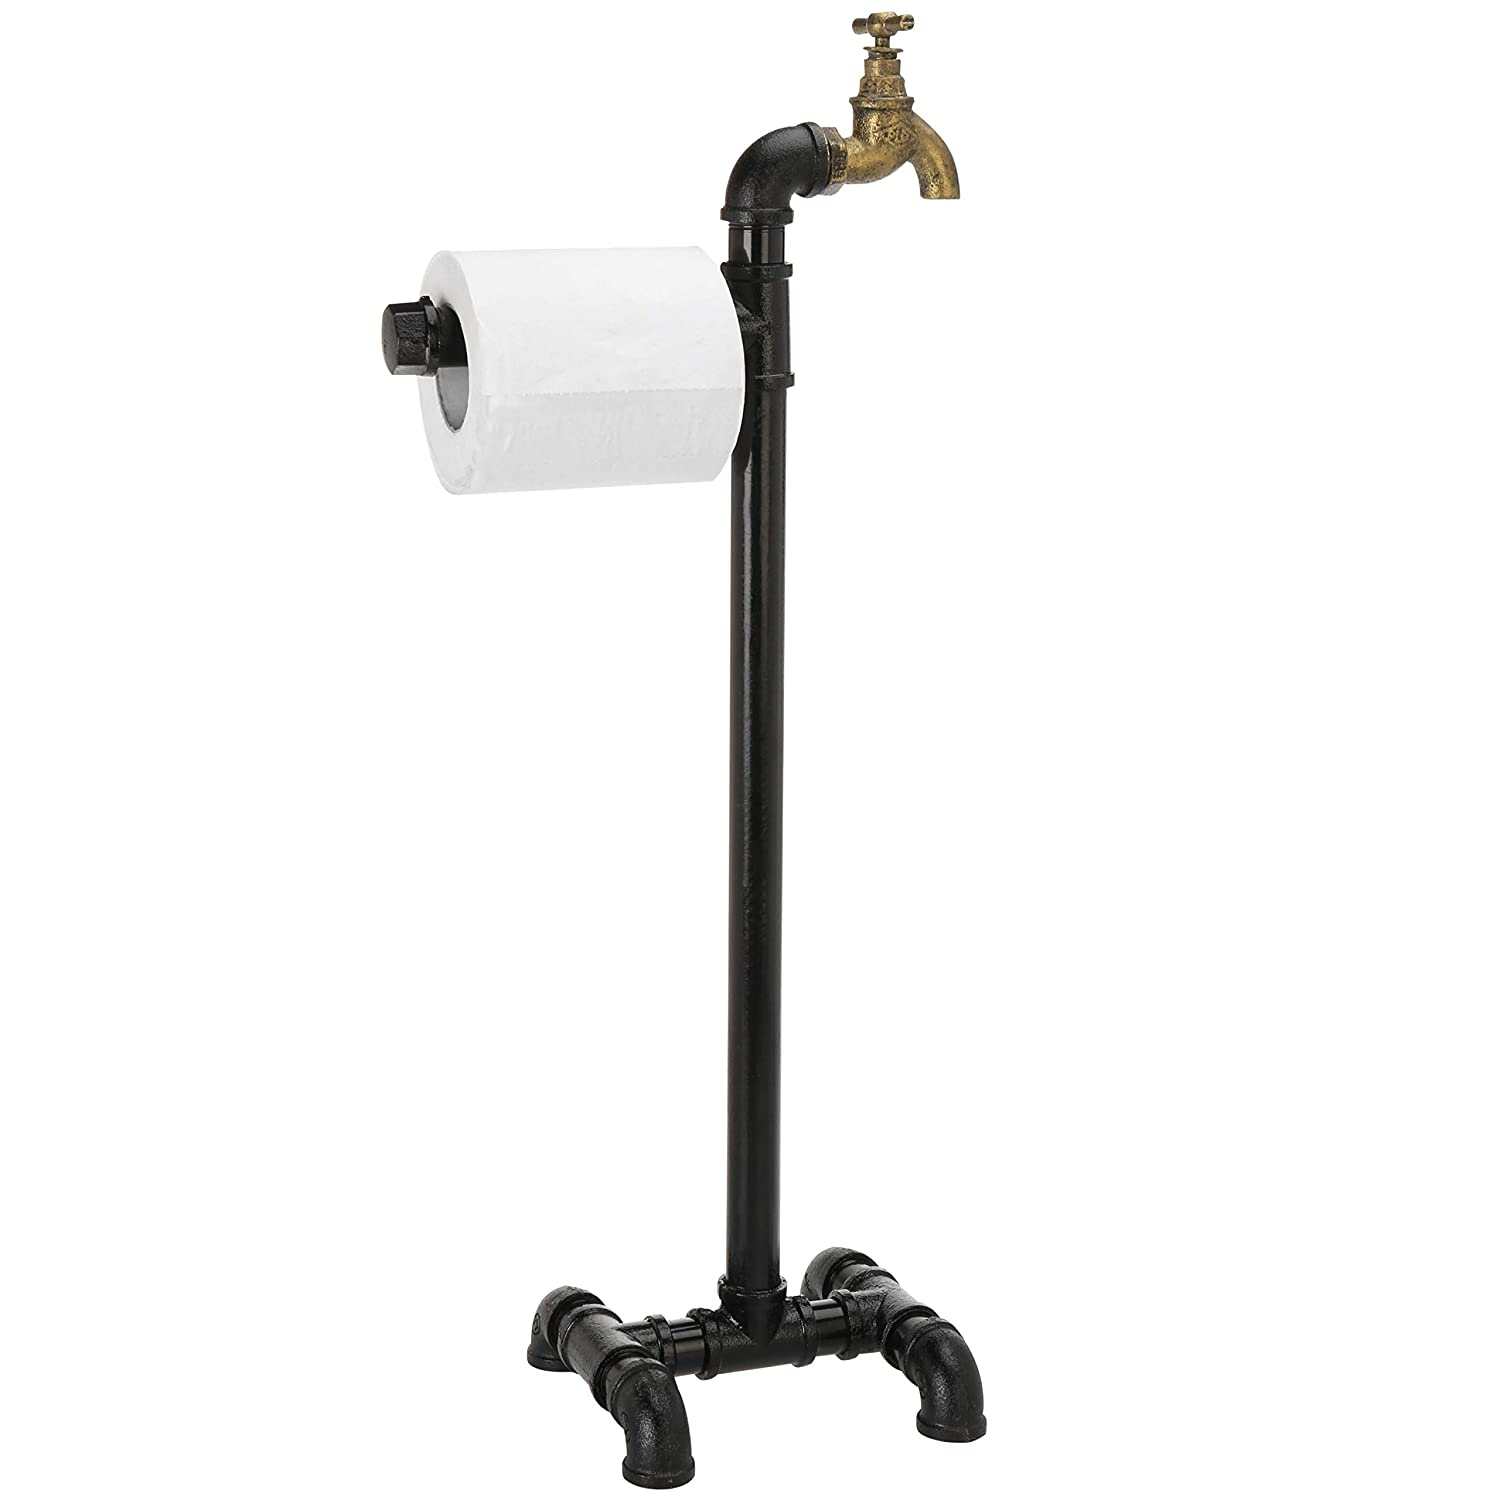 MyGift Freestanding Industrial Metal Pipe /& Spout Toilet Paper Roll Holder